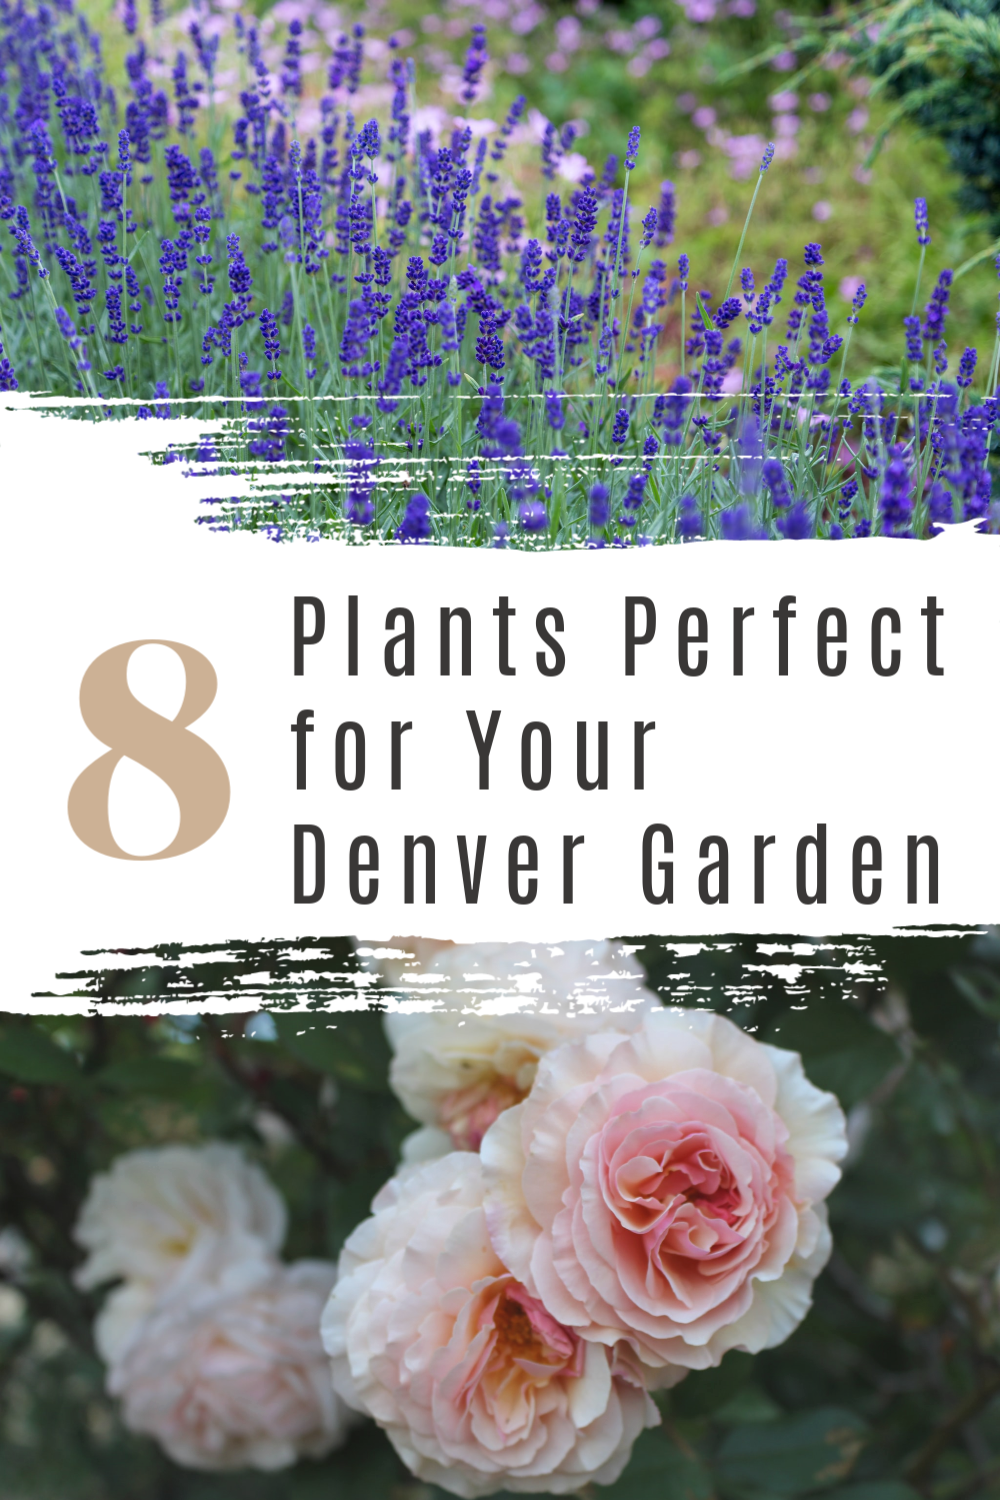 8 Plants Perfect for Your Denver, CO Garden